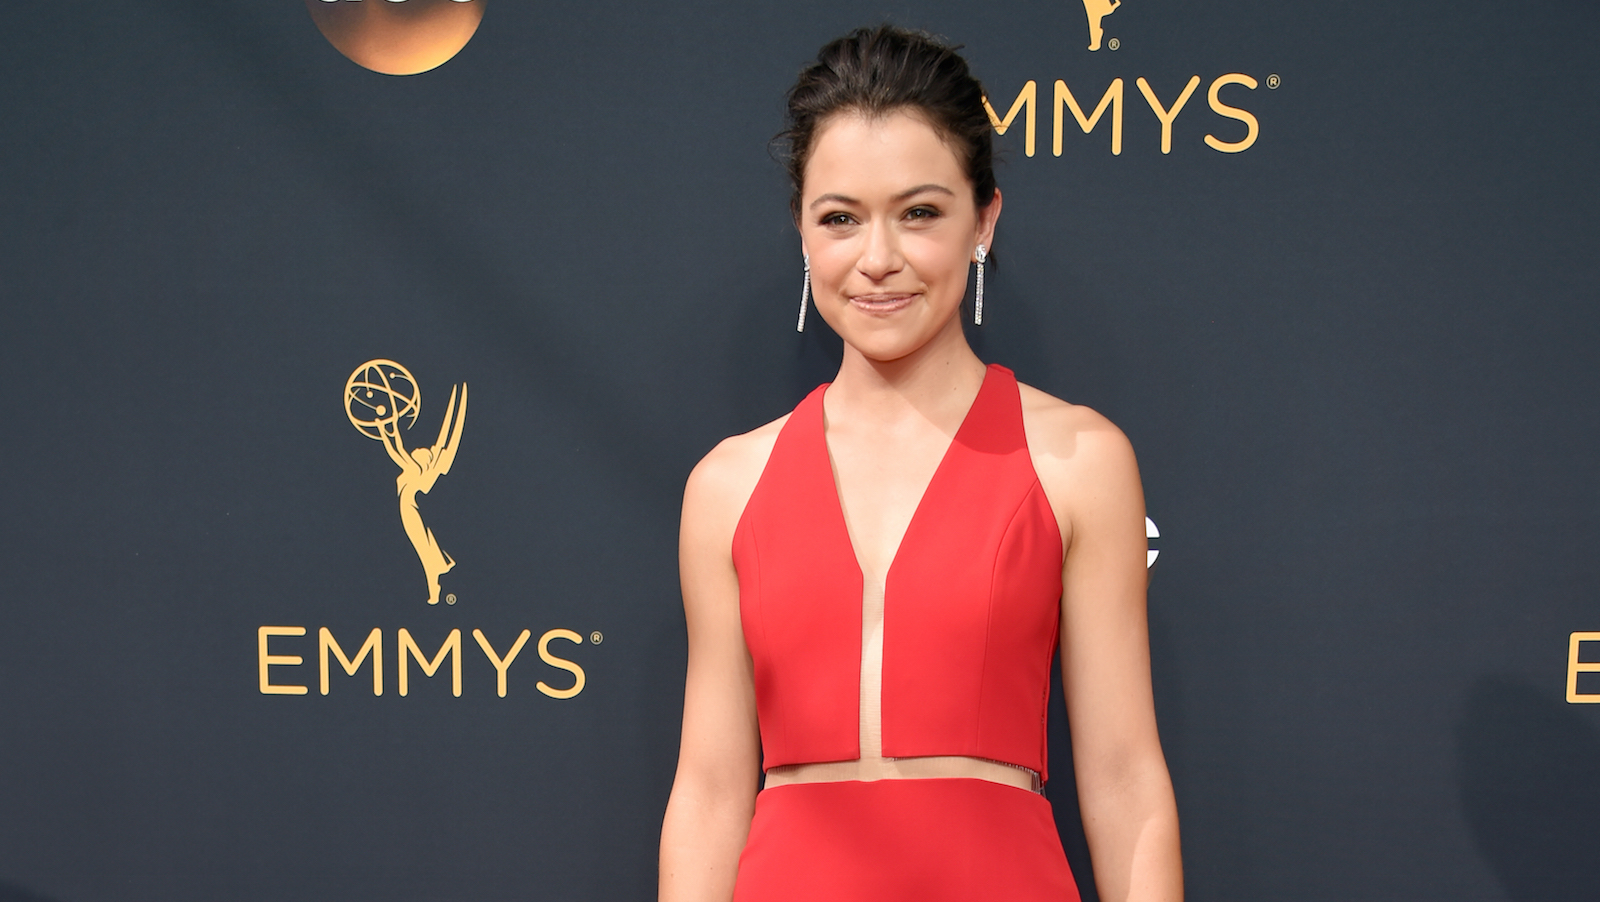 Tatiana Maslany  arrives at the 68th Primetime Emmy Awards on Sunday, Sept. 18, 2016, at the Microsoft Theater in Los Angeles. (Photo by Phil McCarten/Invision for the Television Academy/AP Images)